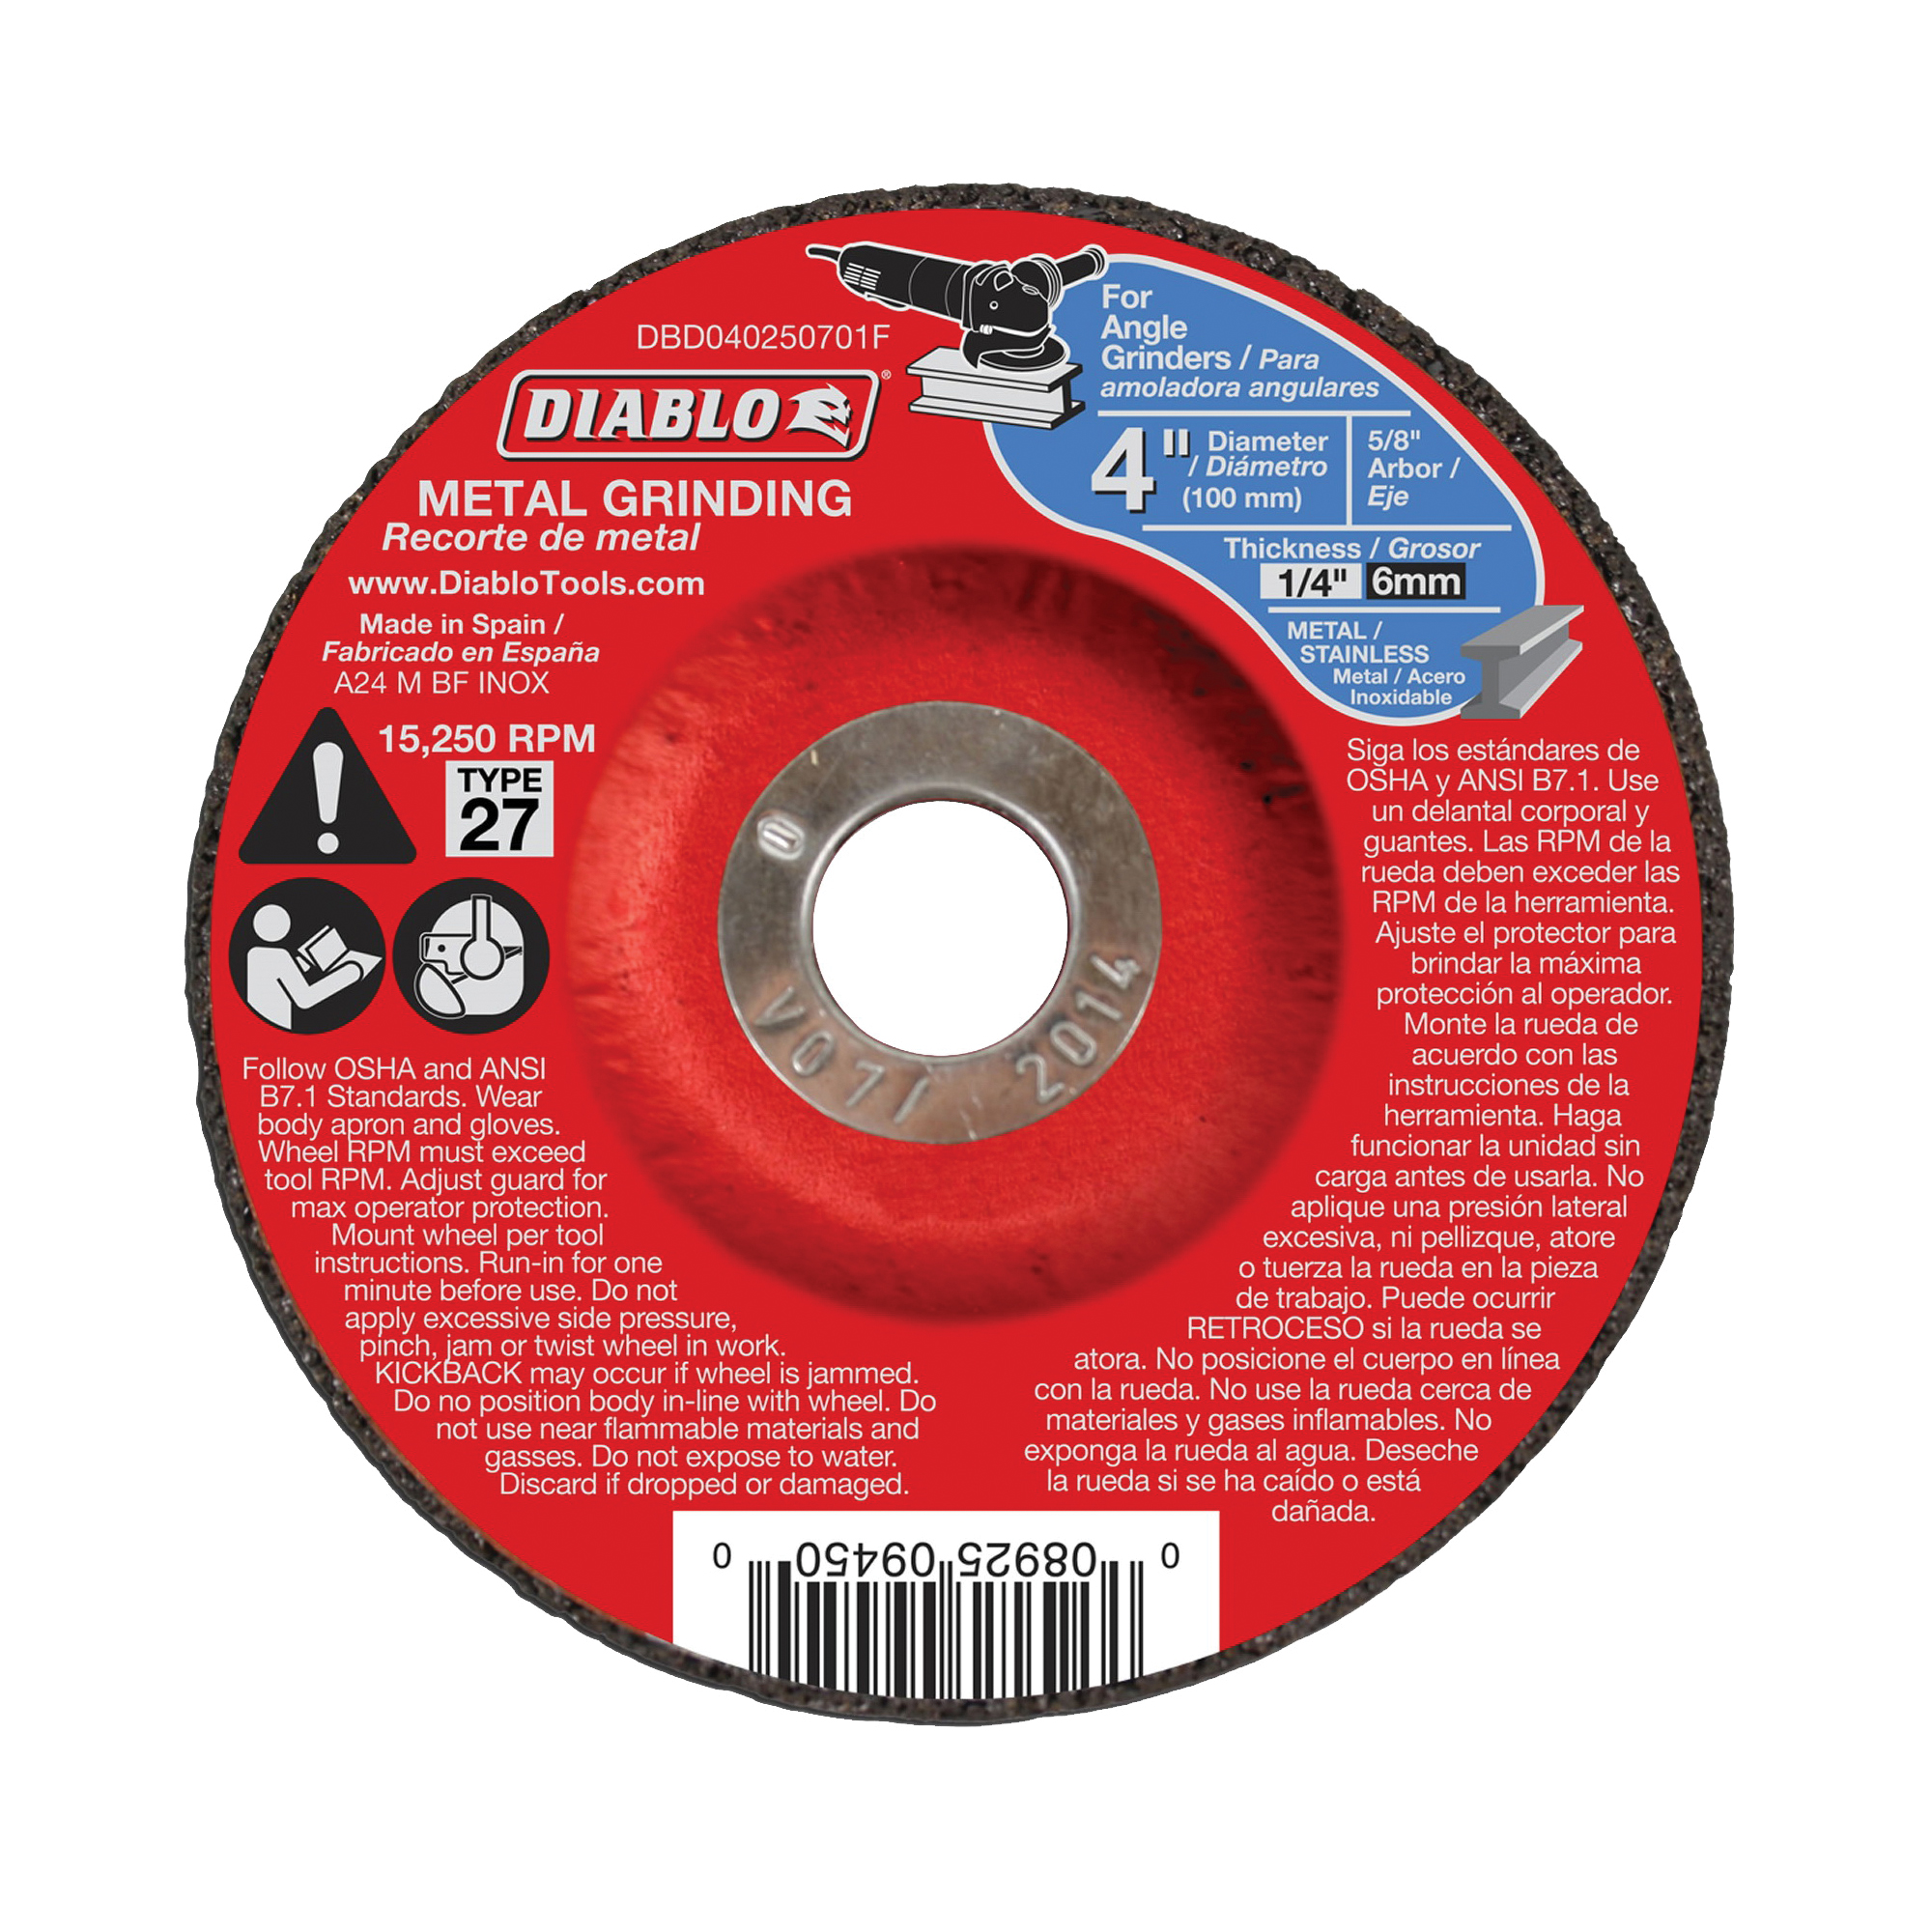 Picture of Diablo DBD040250701F Grinding Wheel, 4 in Dia, 1/4 in Thick, 5/8 in Arbor, Aluminum Oxide Abrasive